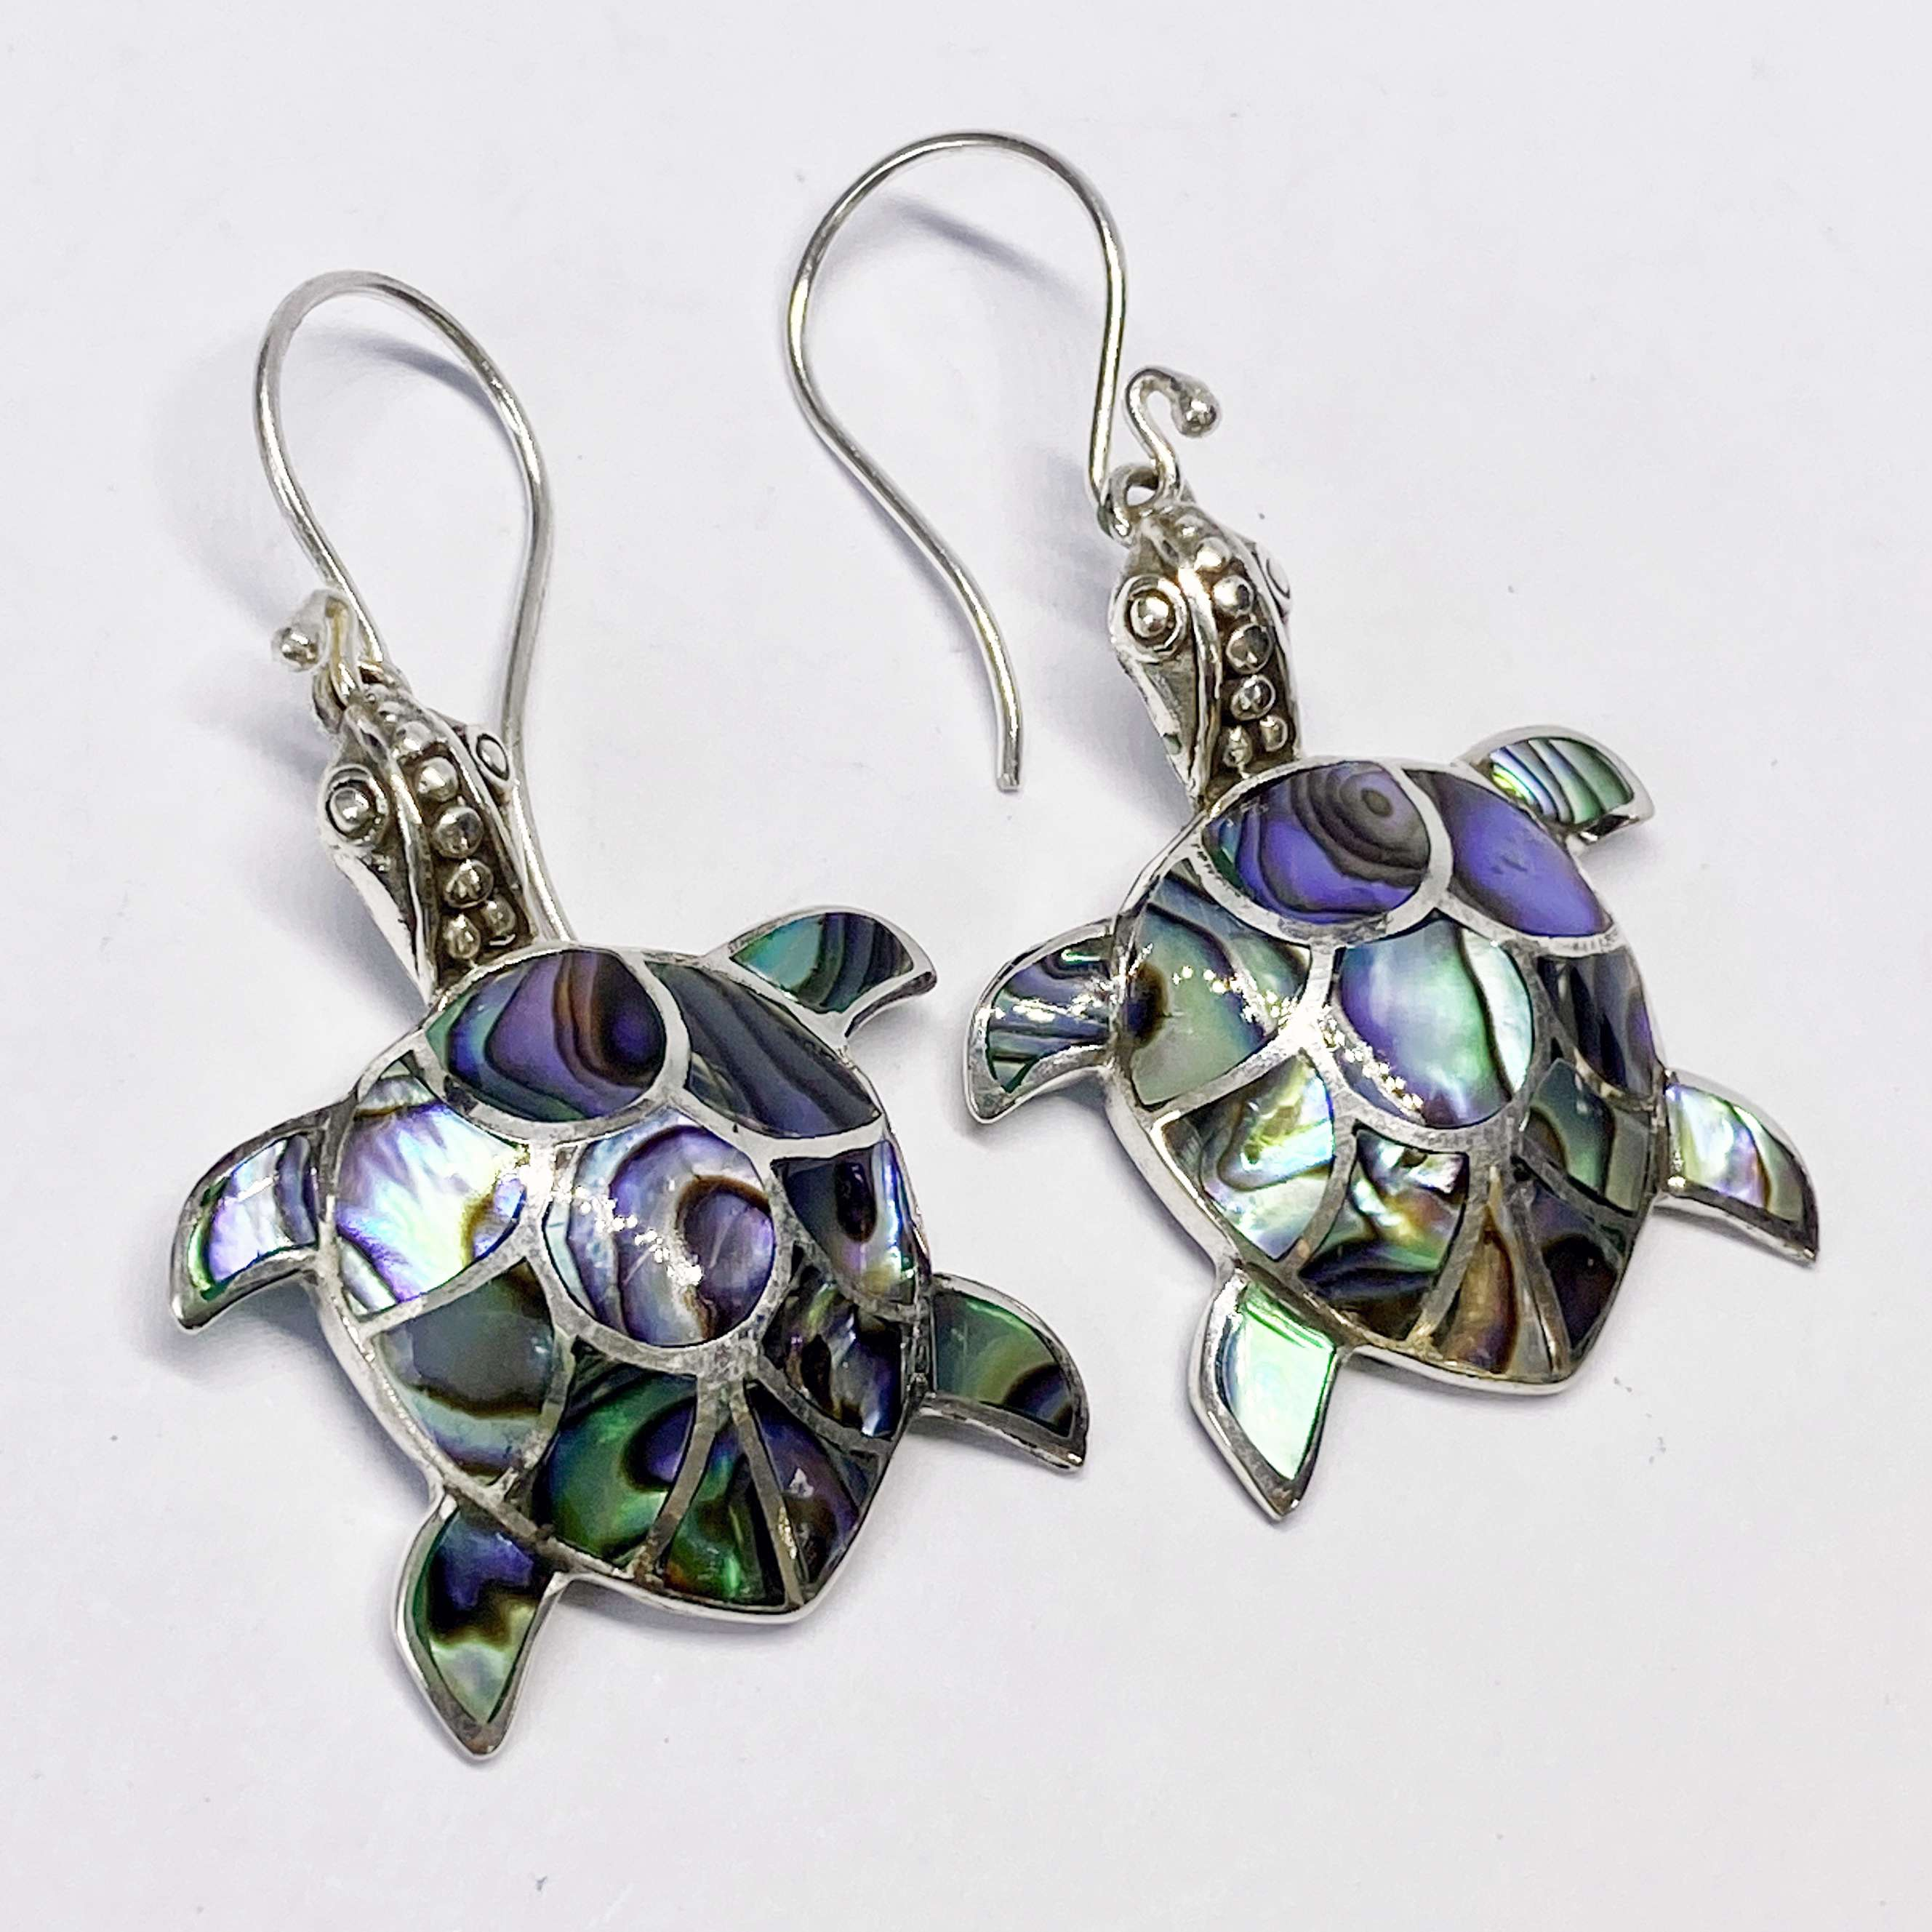 (HANDMADE 925 BALI SILVER TURTLE EARRINGS WITH ABALONE)